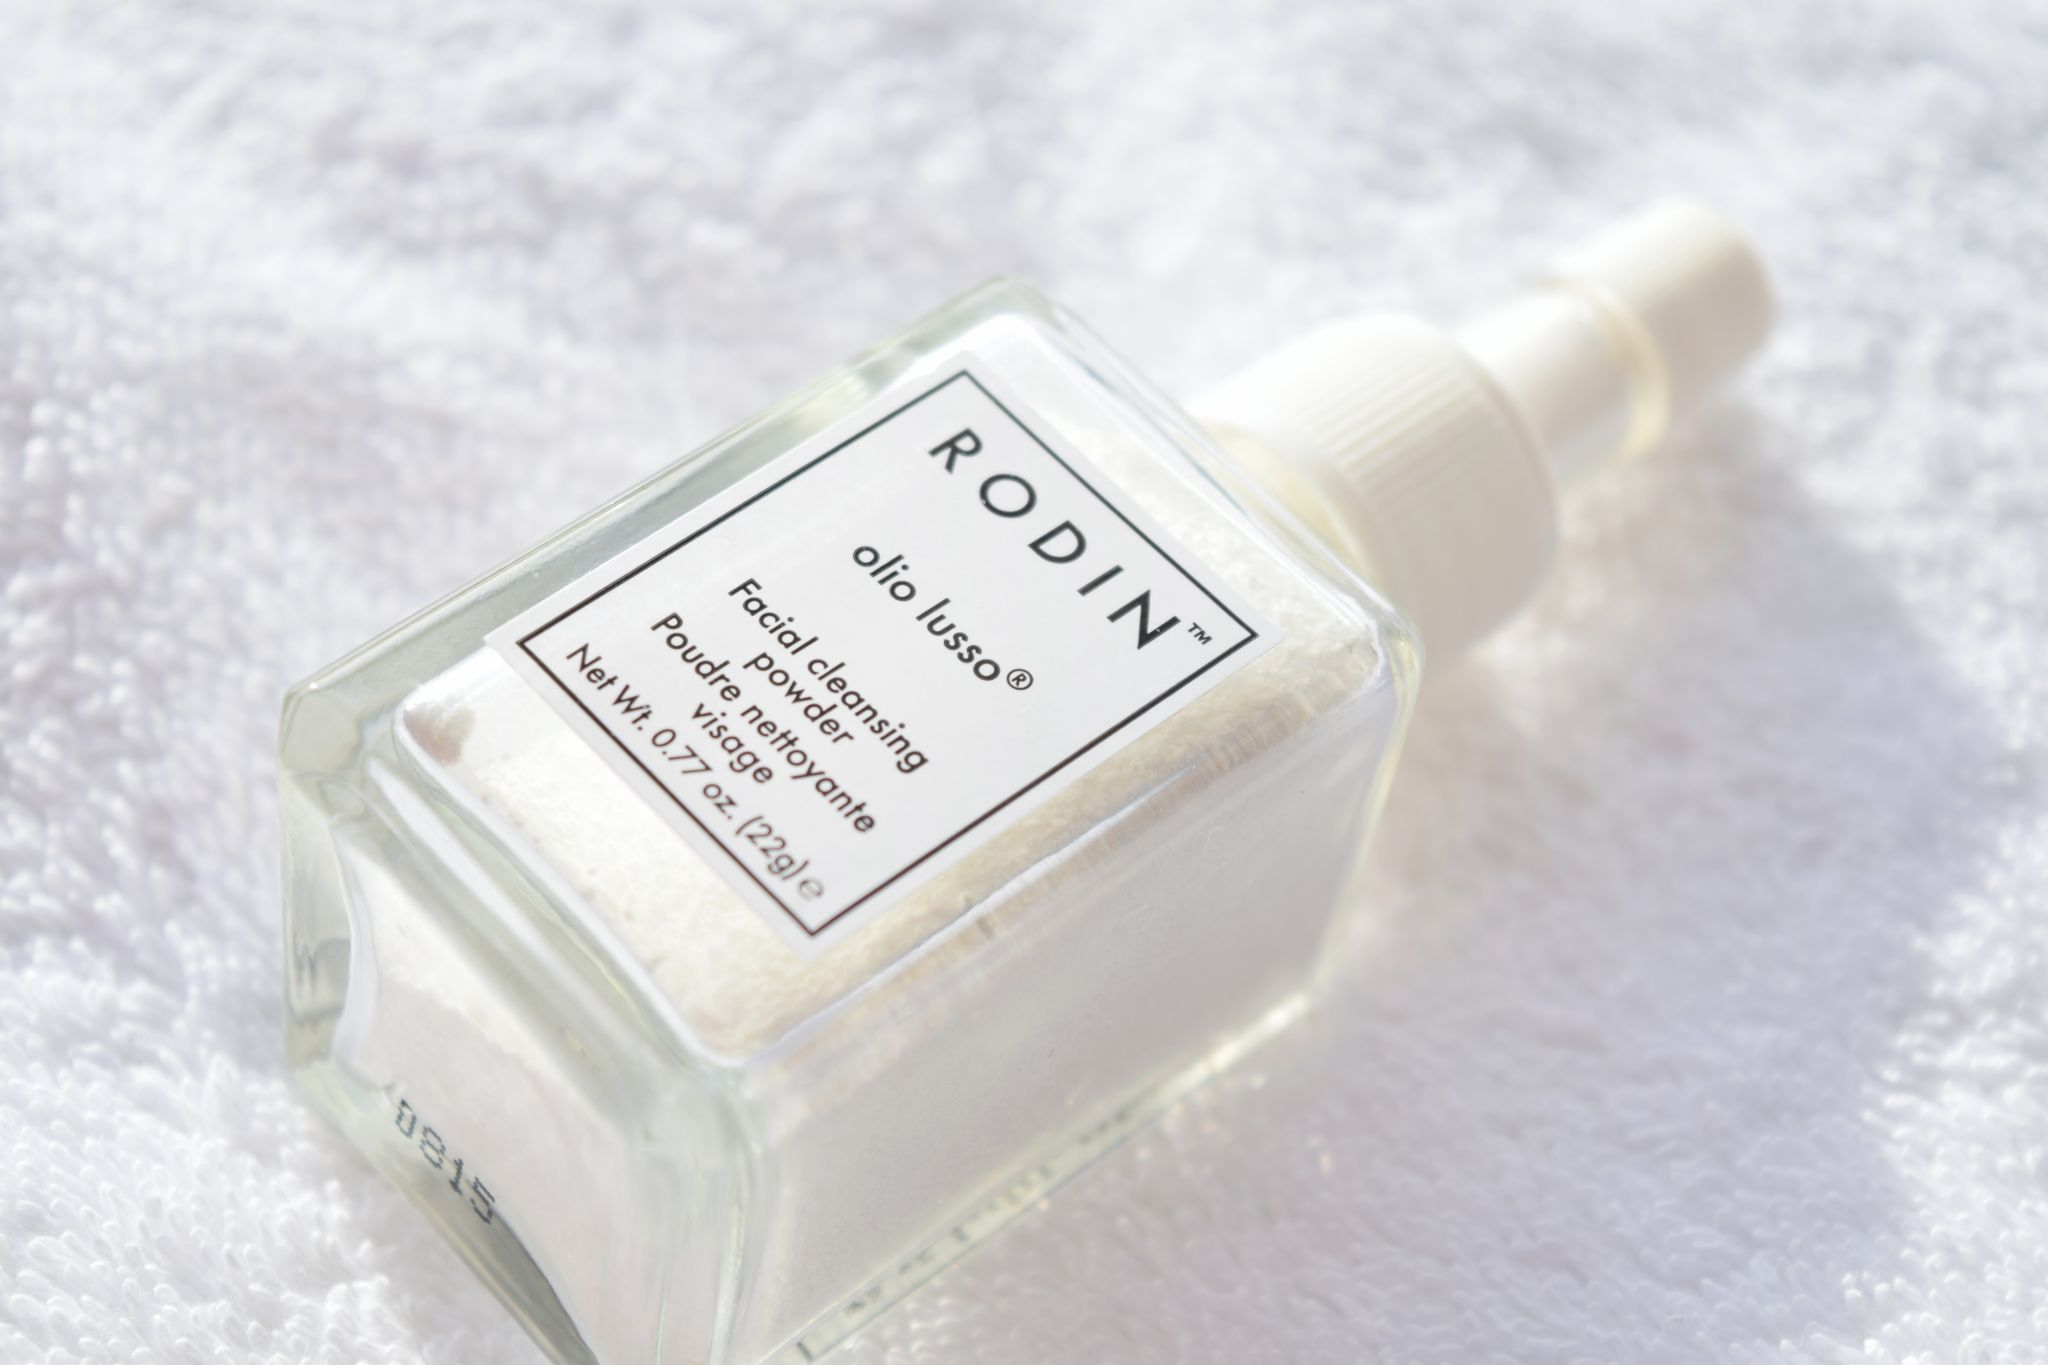 Rodin Facial Cleansing Powder